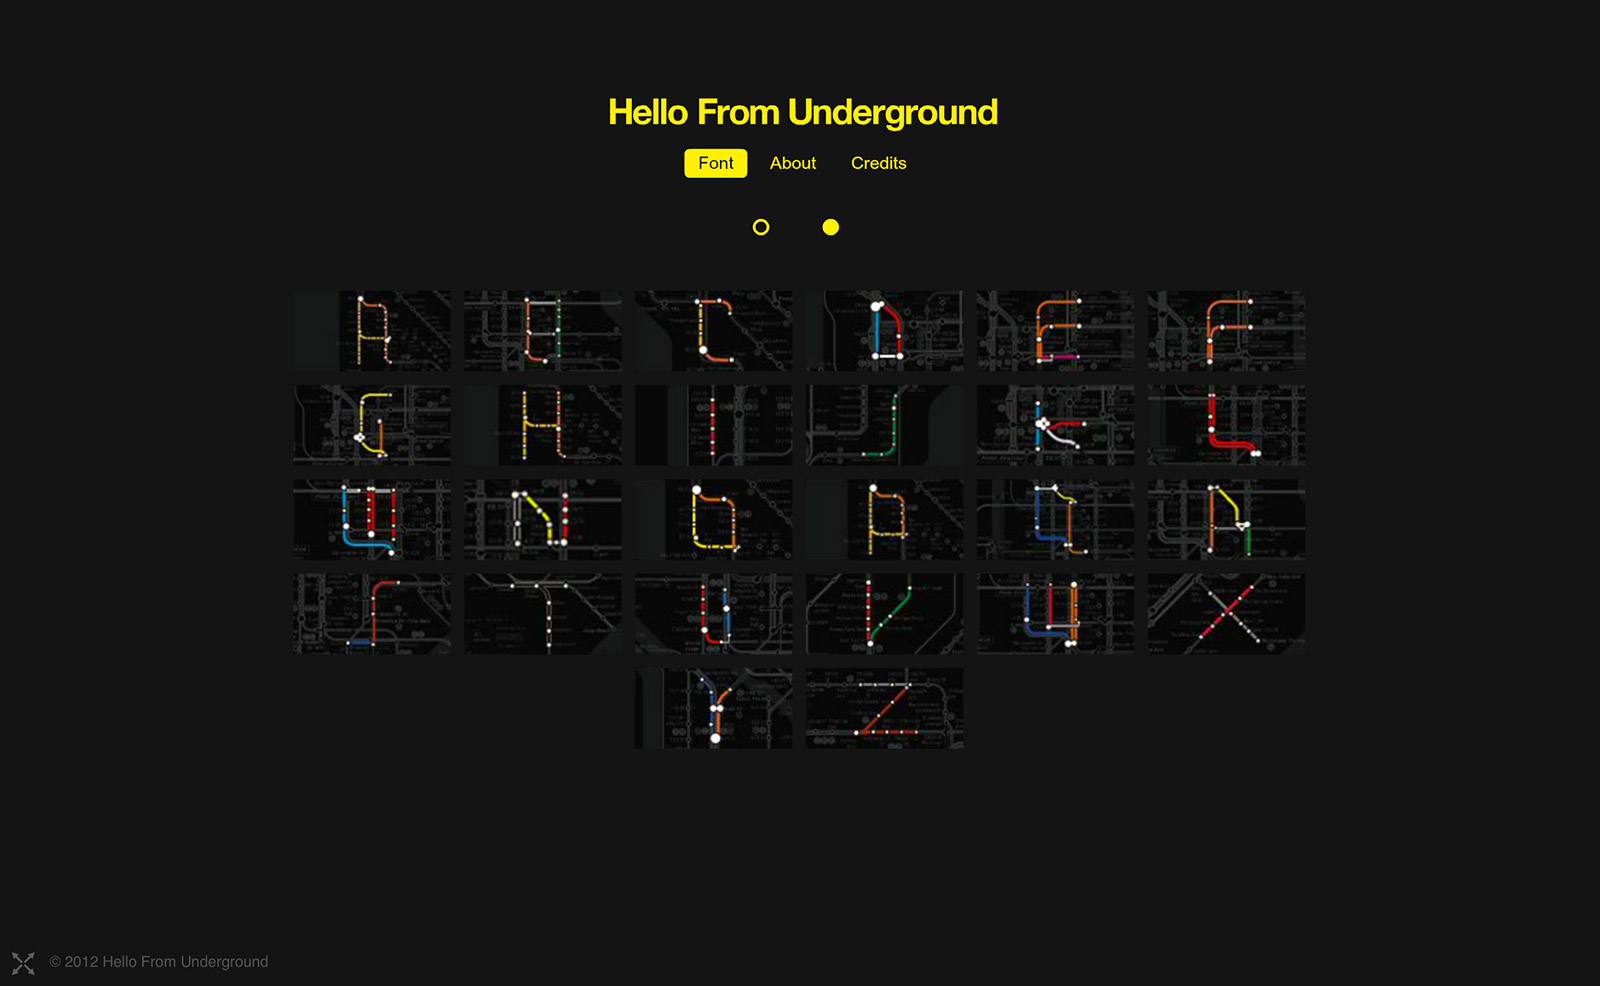 Hello From Underground by Christian Lopez